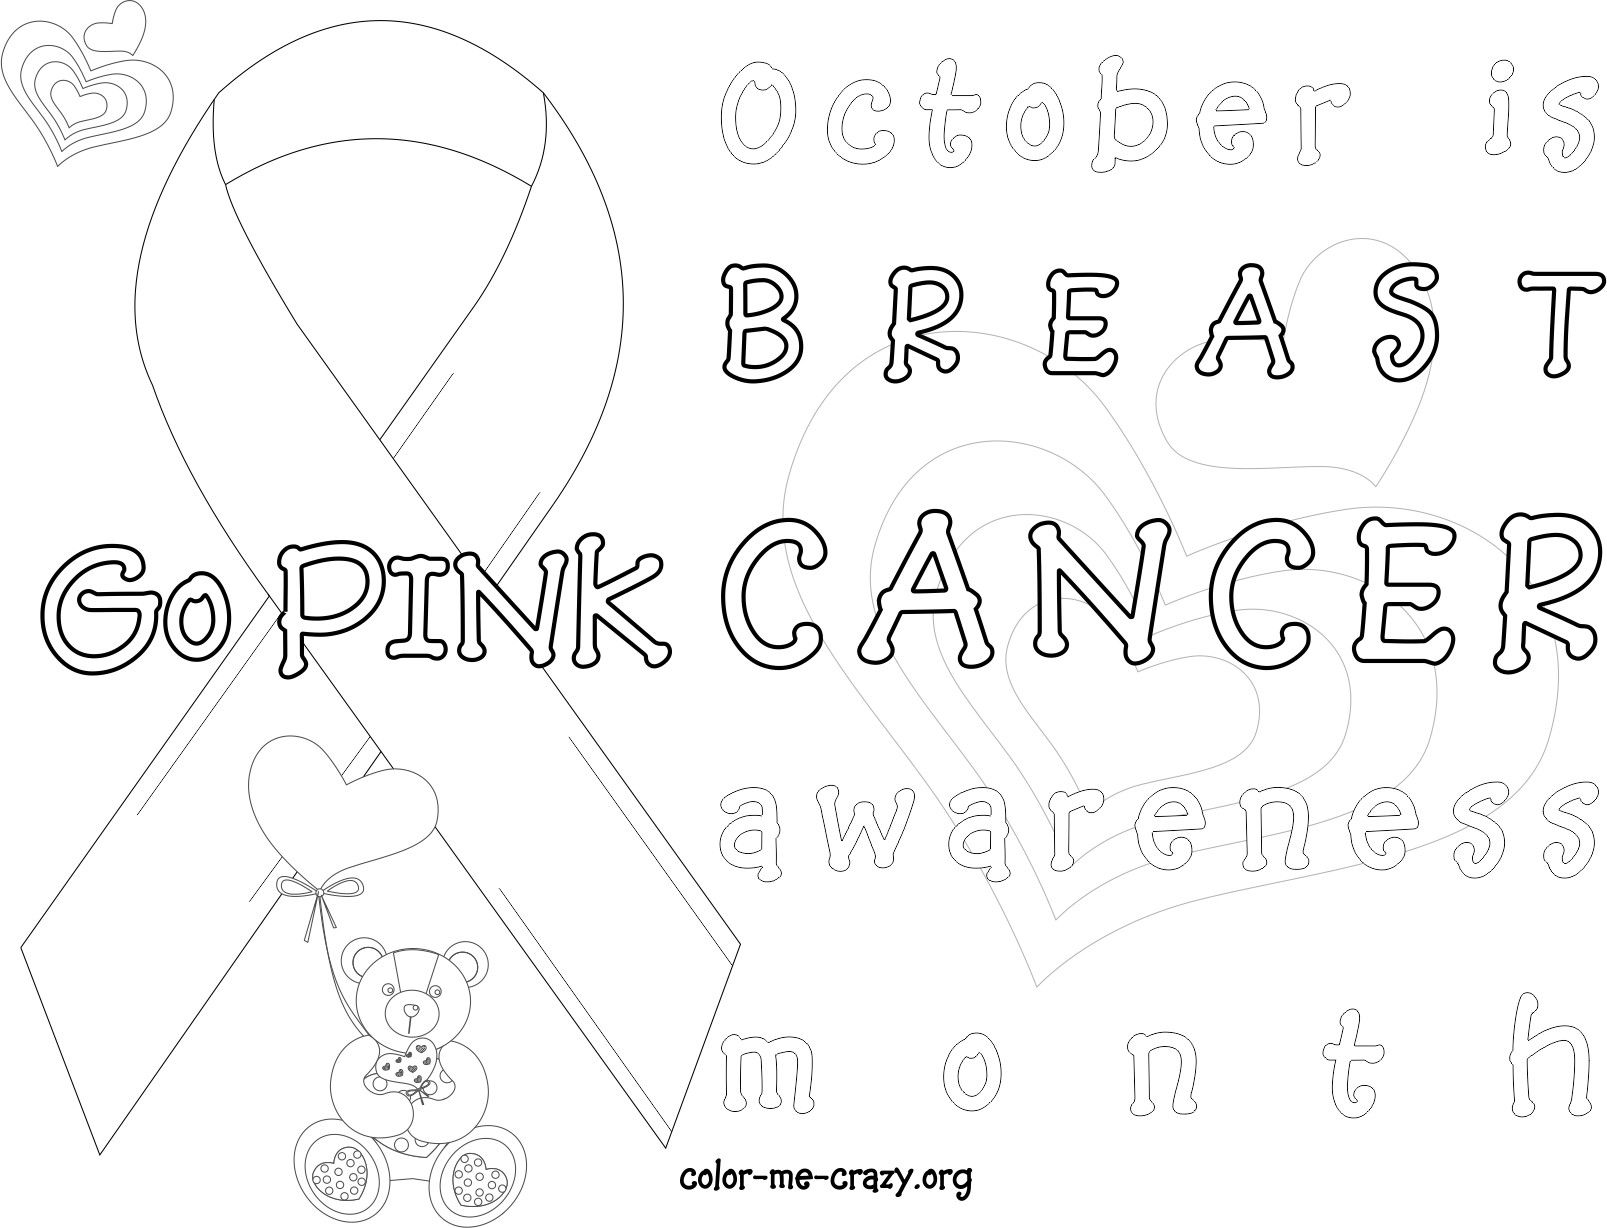 Breast Cancer Ribbon Coloring Page | Breast Cancer Awareness Month ...